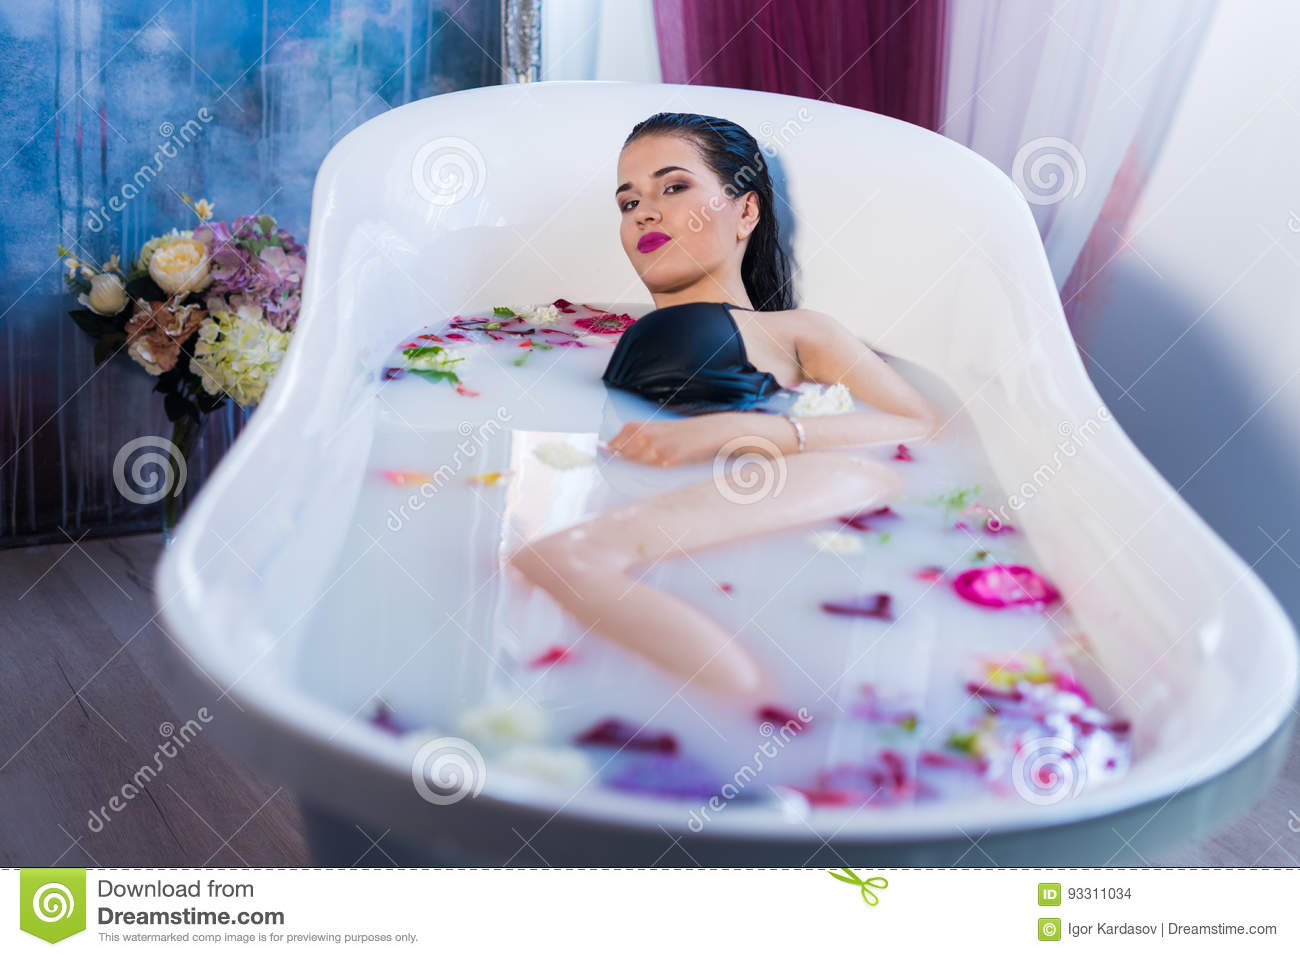 Brunette Woman Relaxing In Hot Milk Bath With Flowers Stock Photo ...